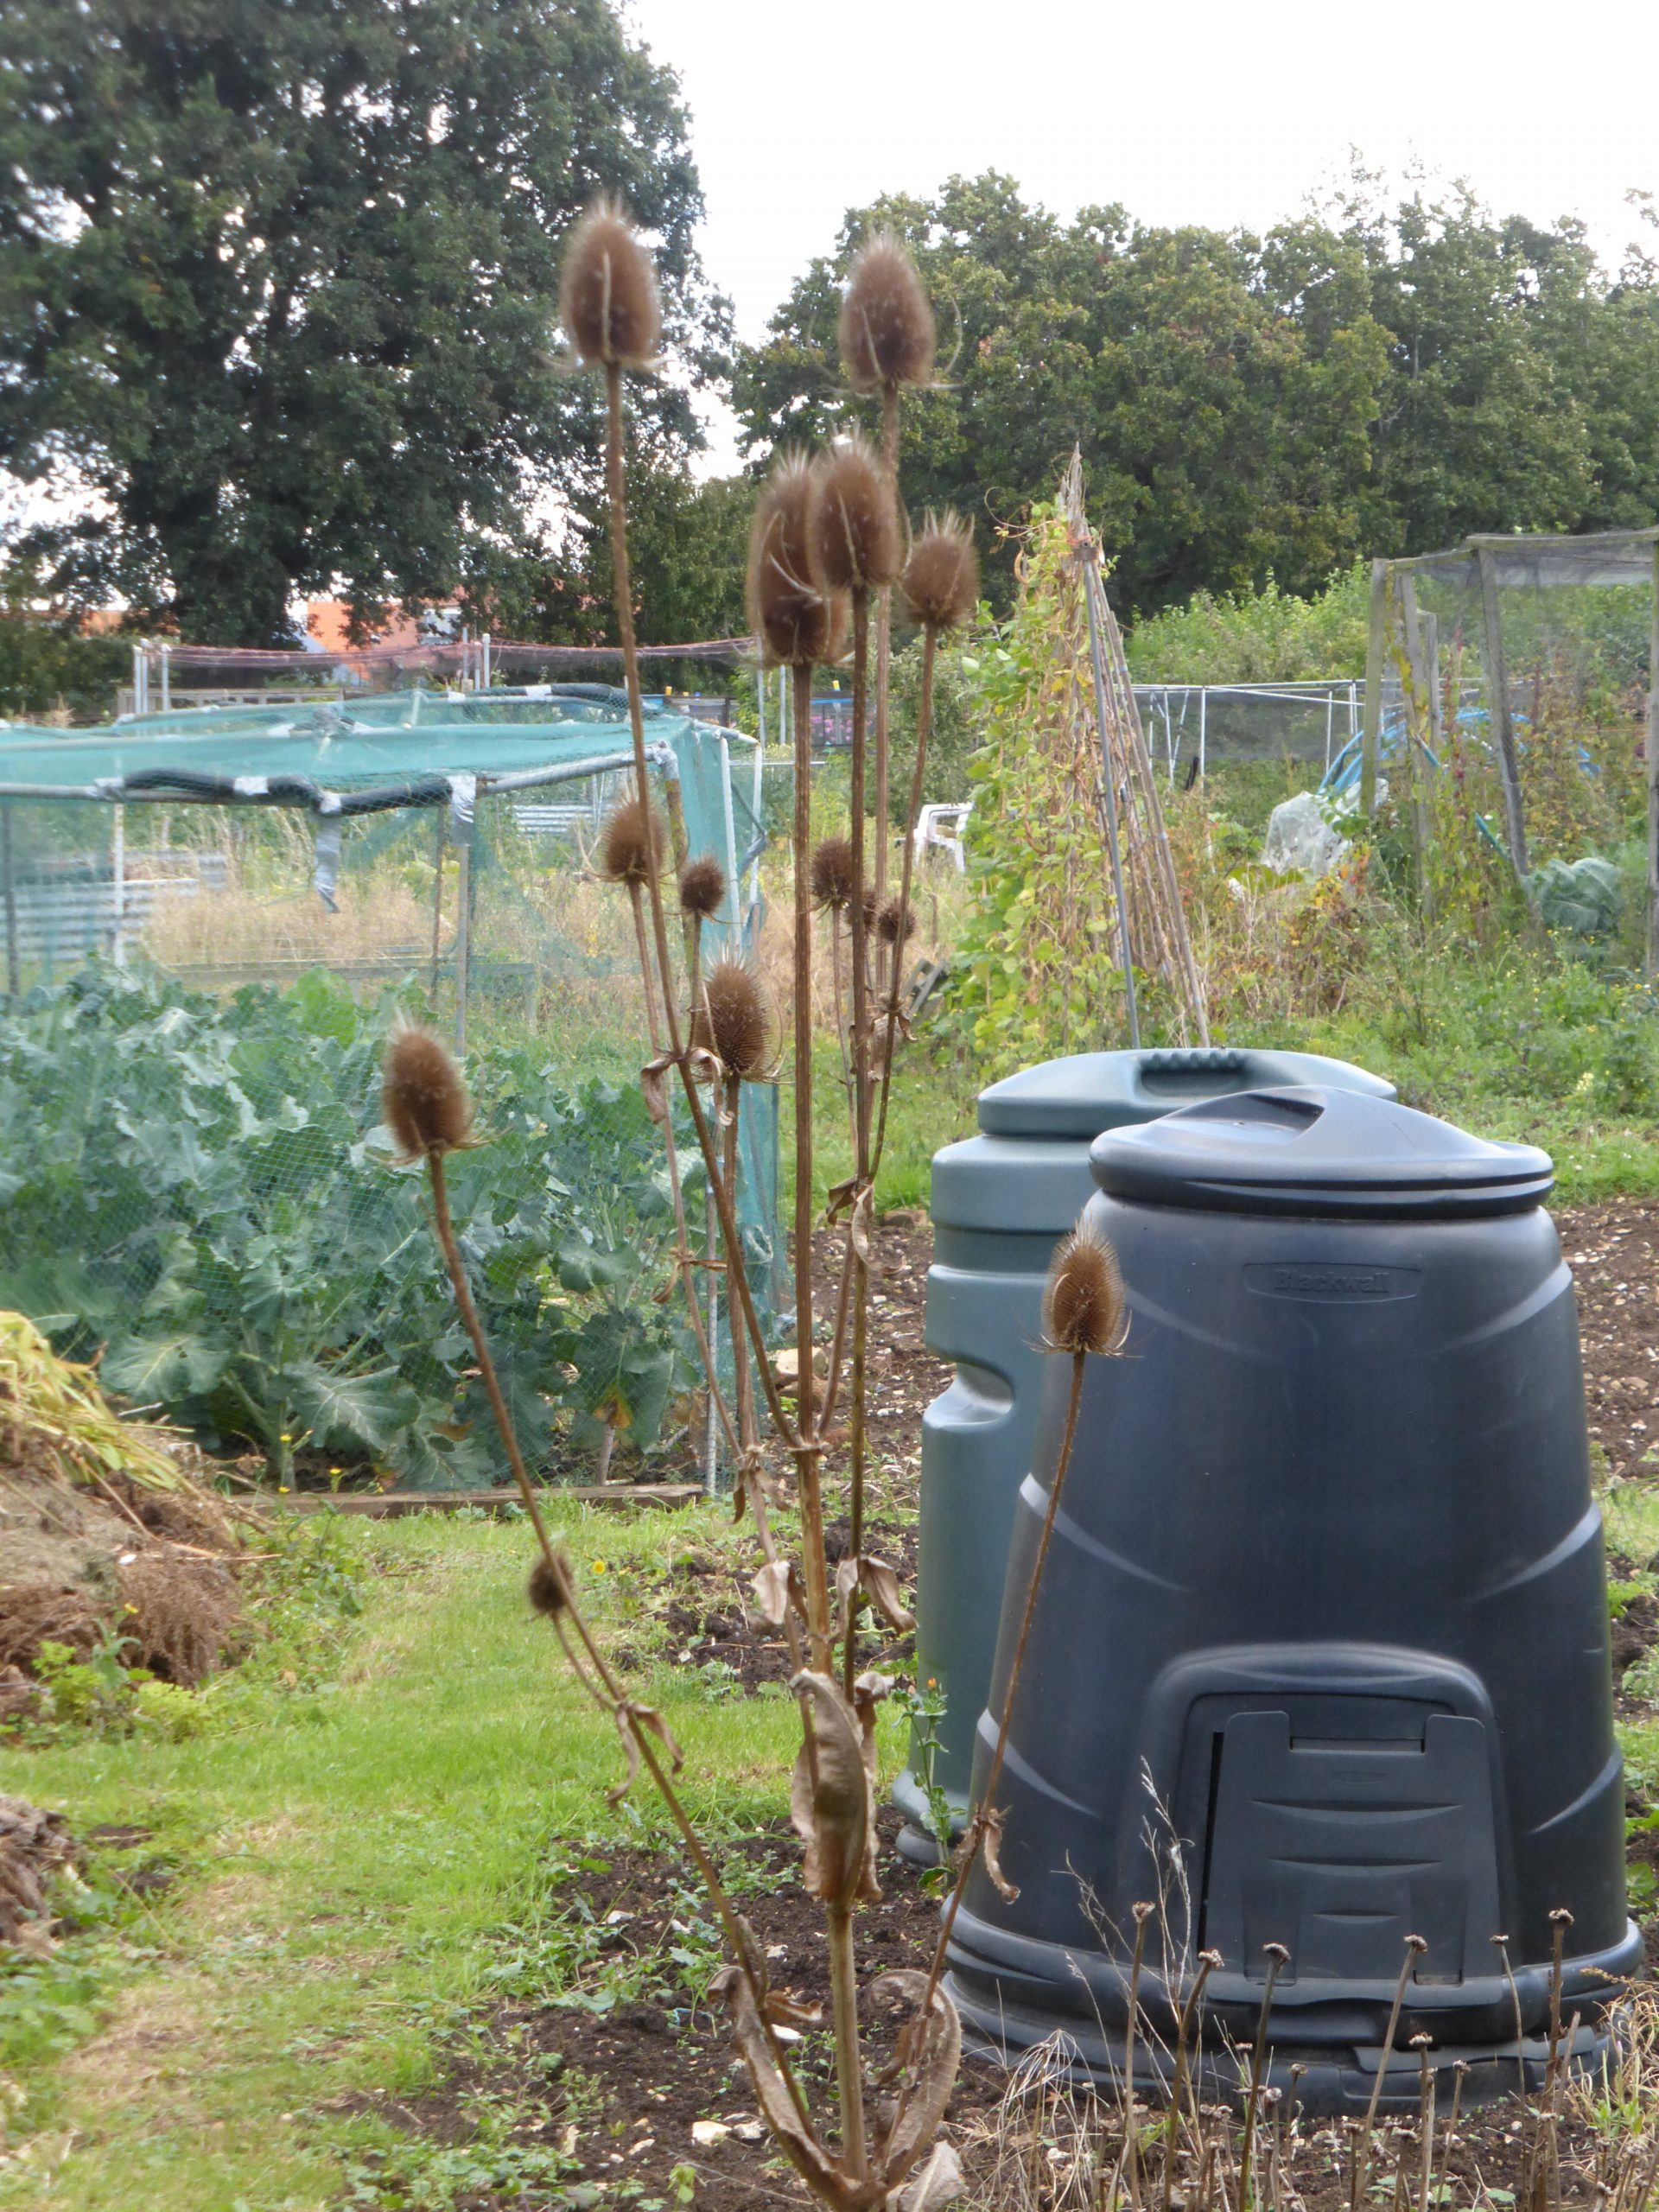 A view of village allotments with large teasels in the foreground